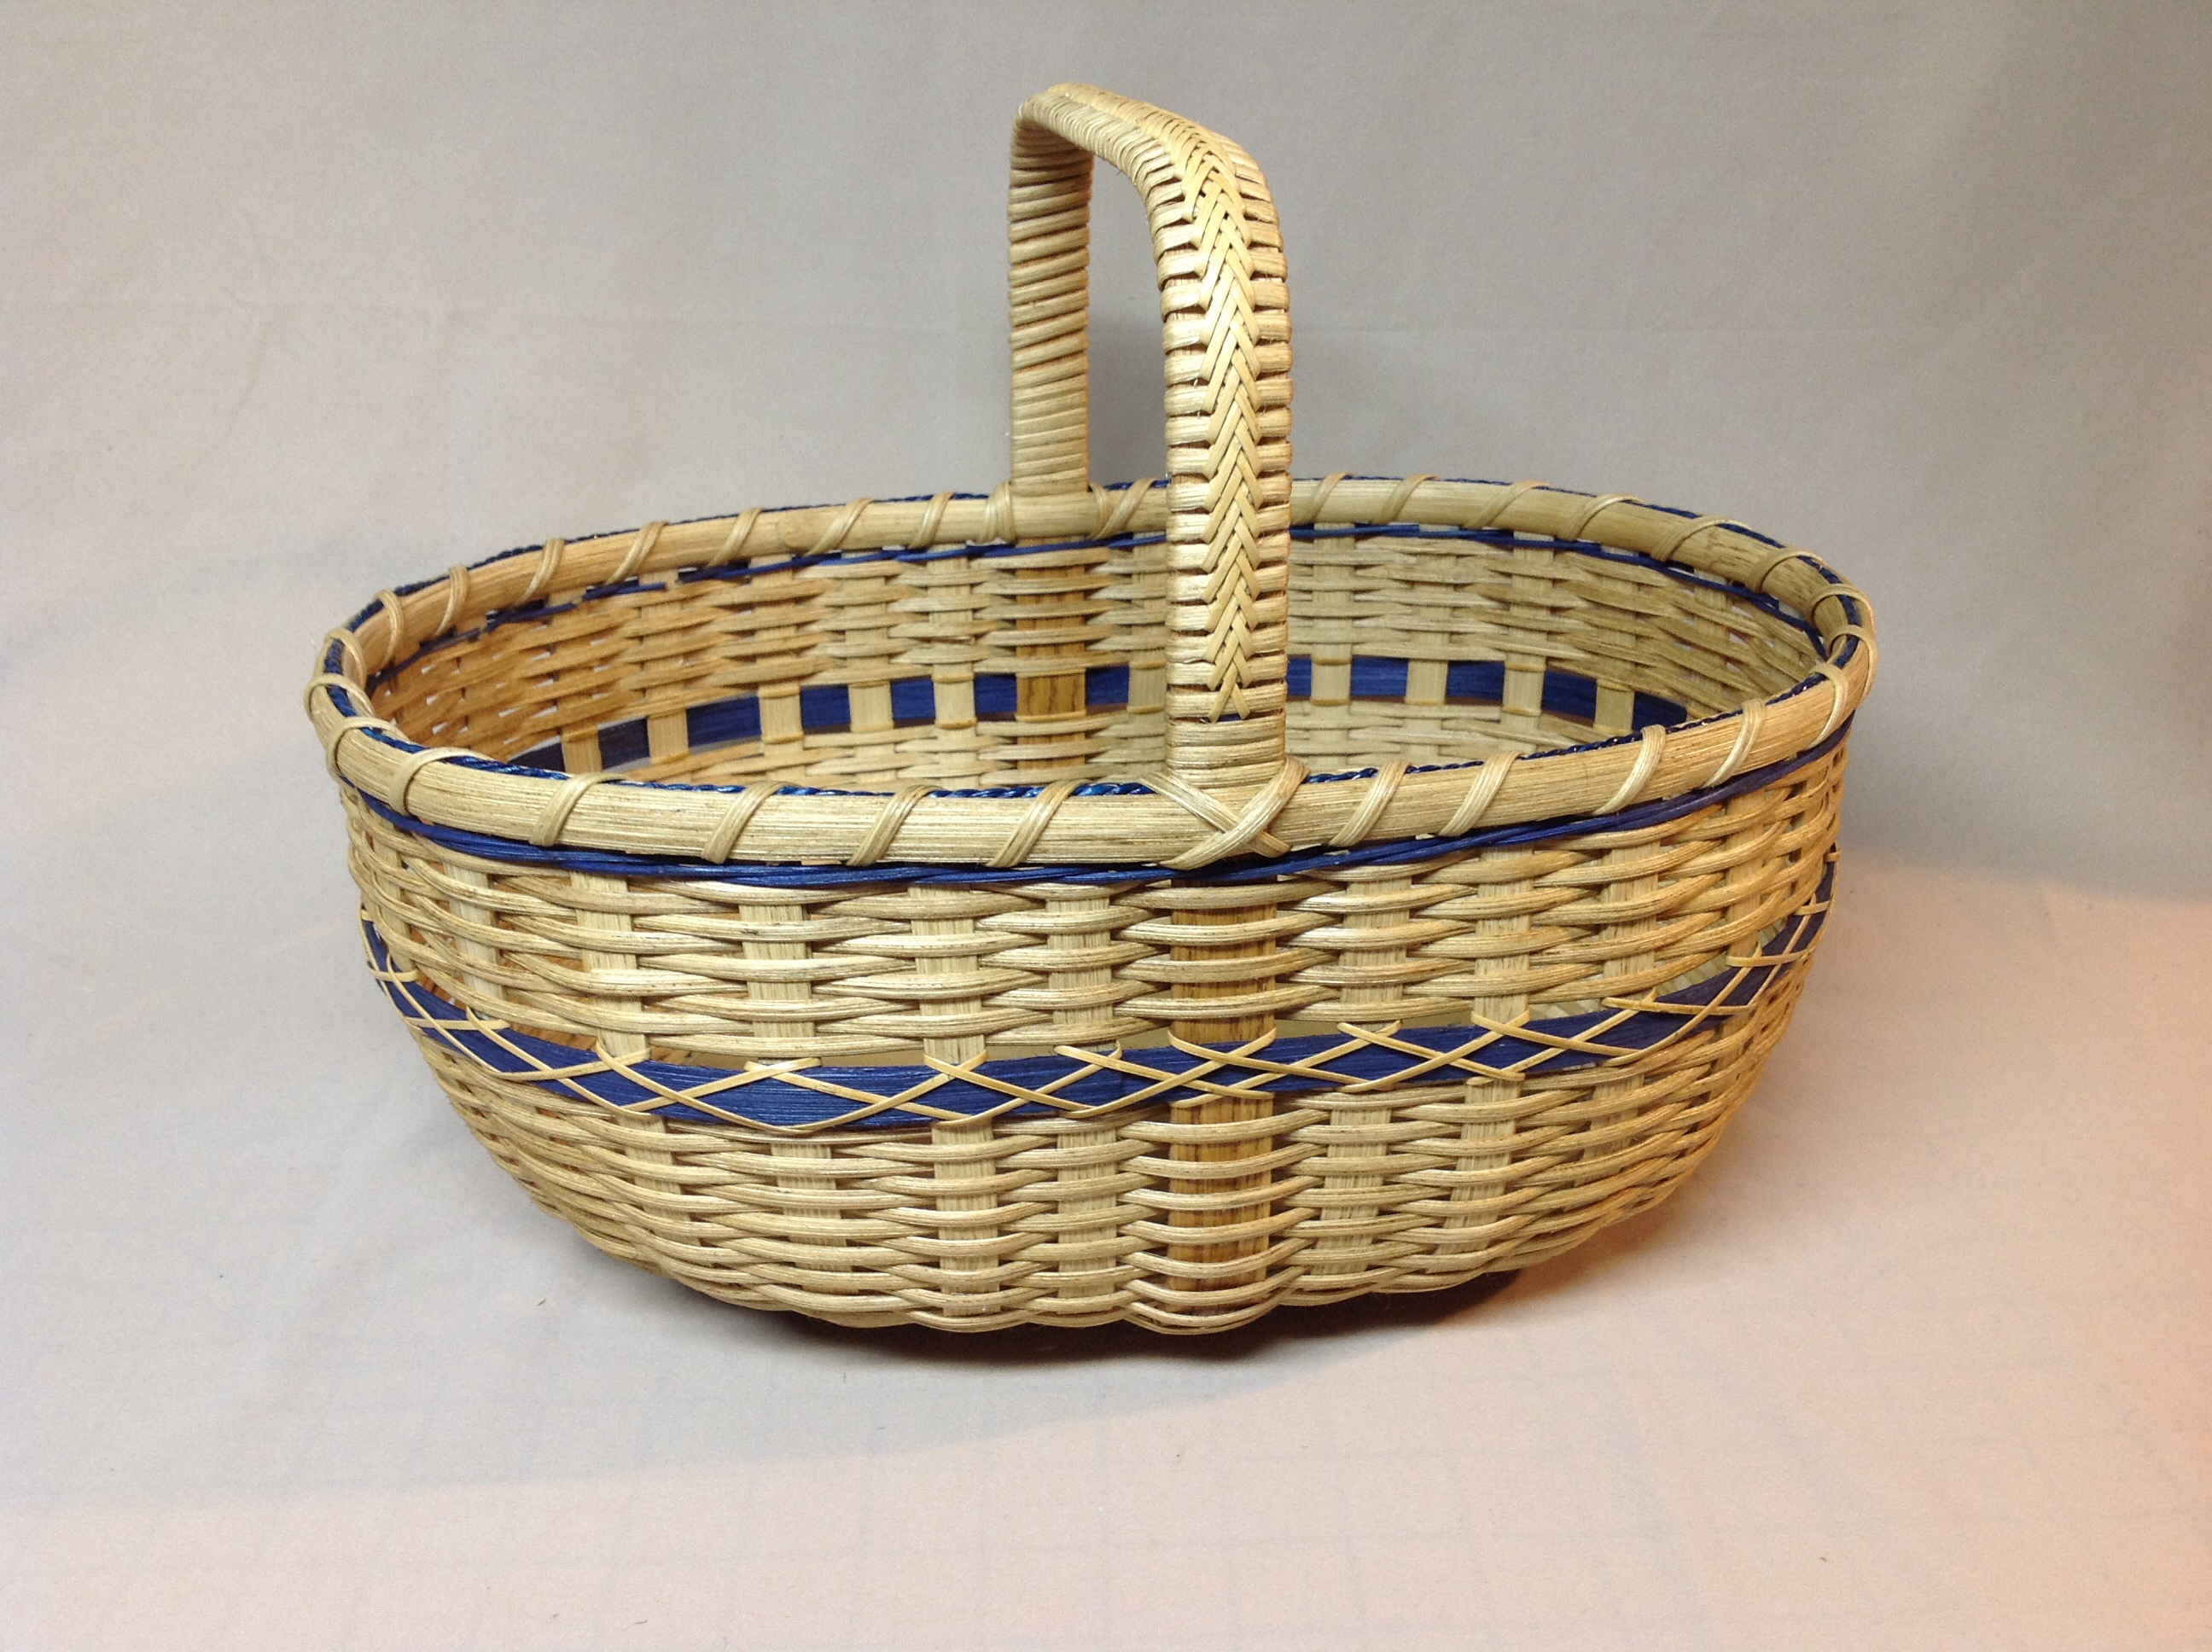 Basket Weaving Handles : How to weave a braided handle on basket hairstyle gallery